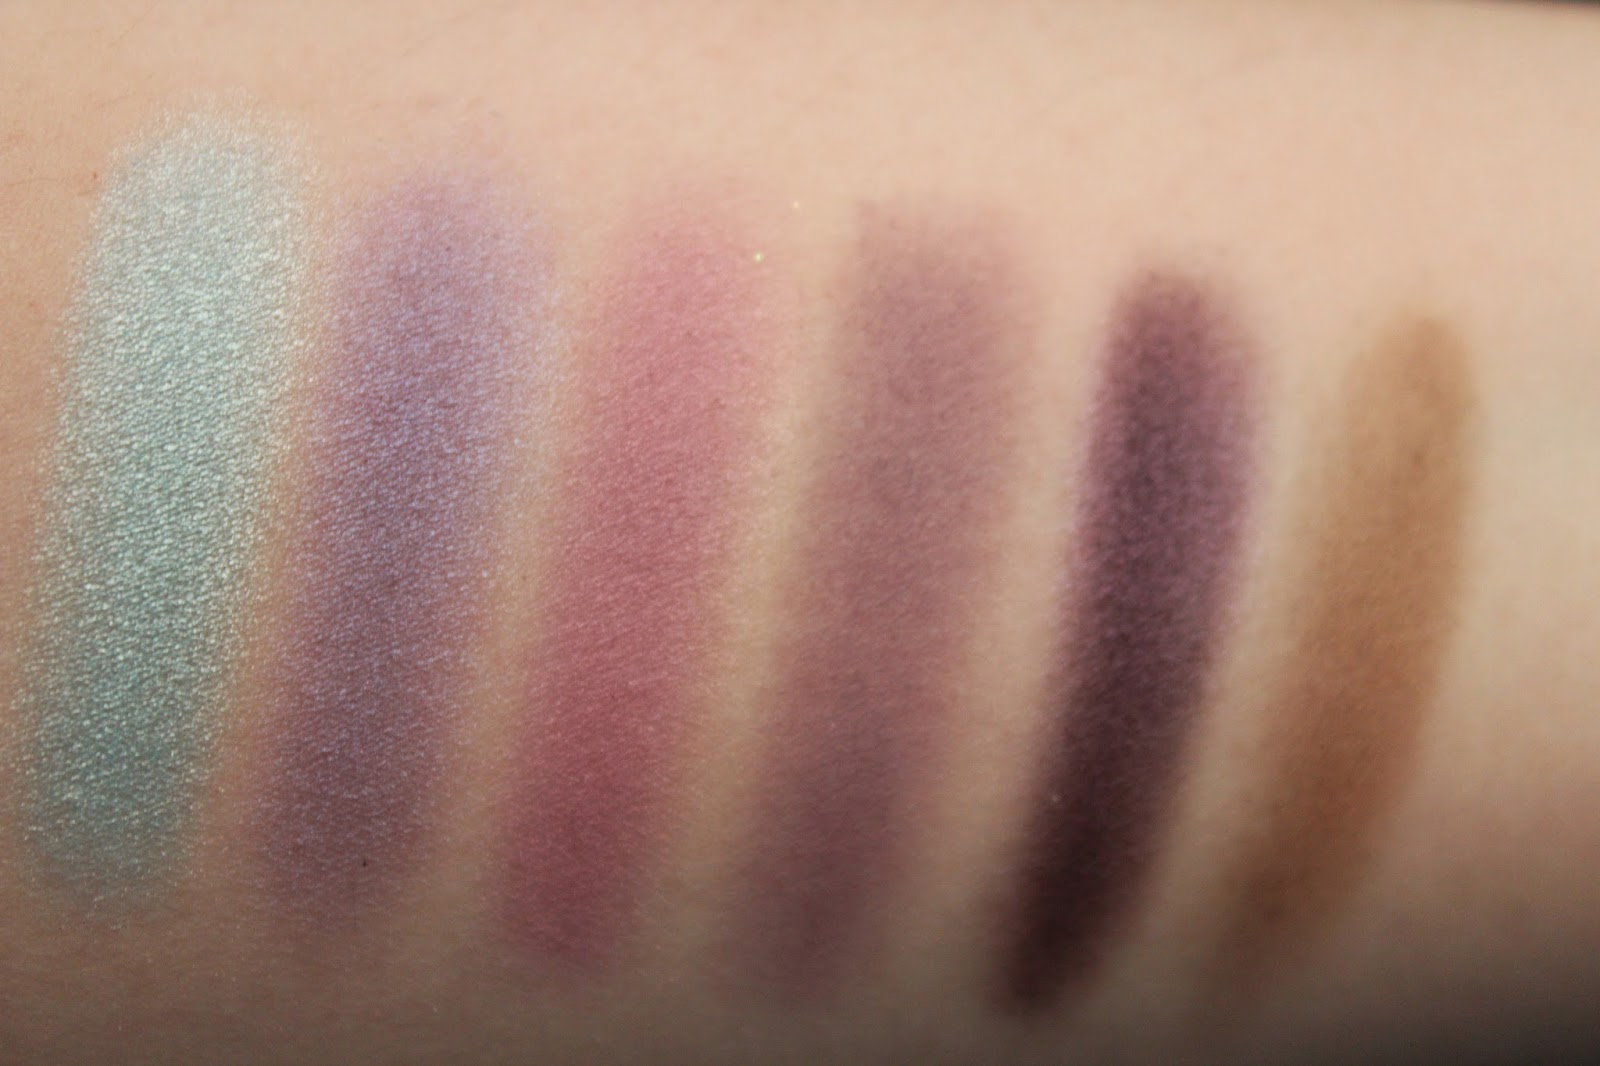 beauty, makeup, makeup swatches, ulta, ulta beauty, ulta collection, ulta eyeshadow, ulta eyeshadow review, ulta eyeshadow swatches, ulta makeup, ulta review,